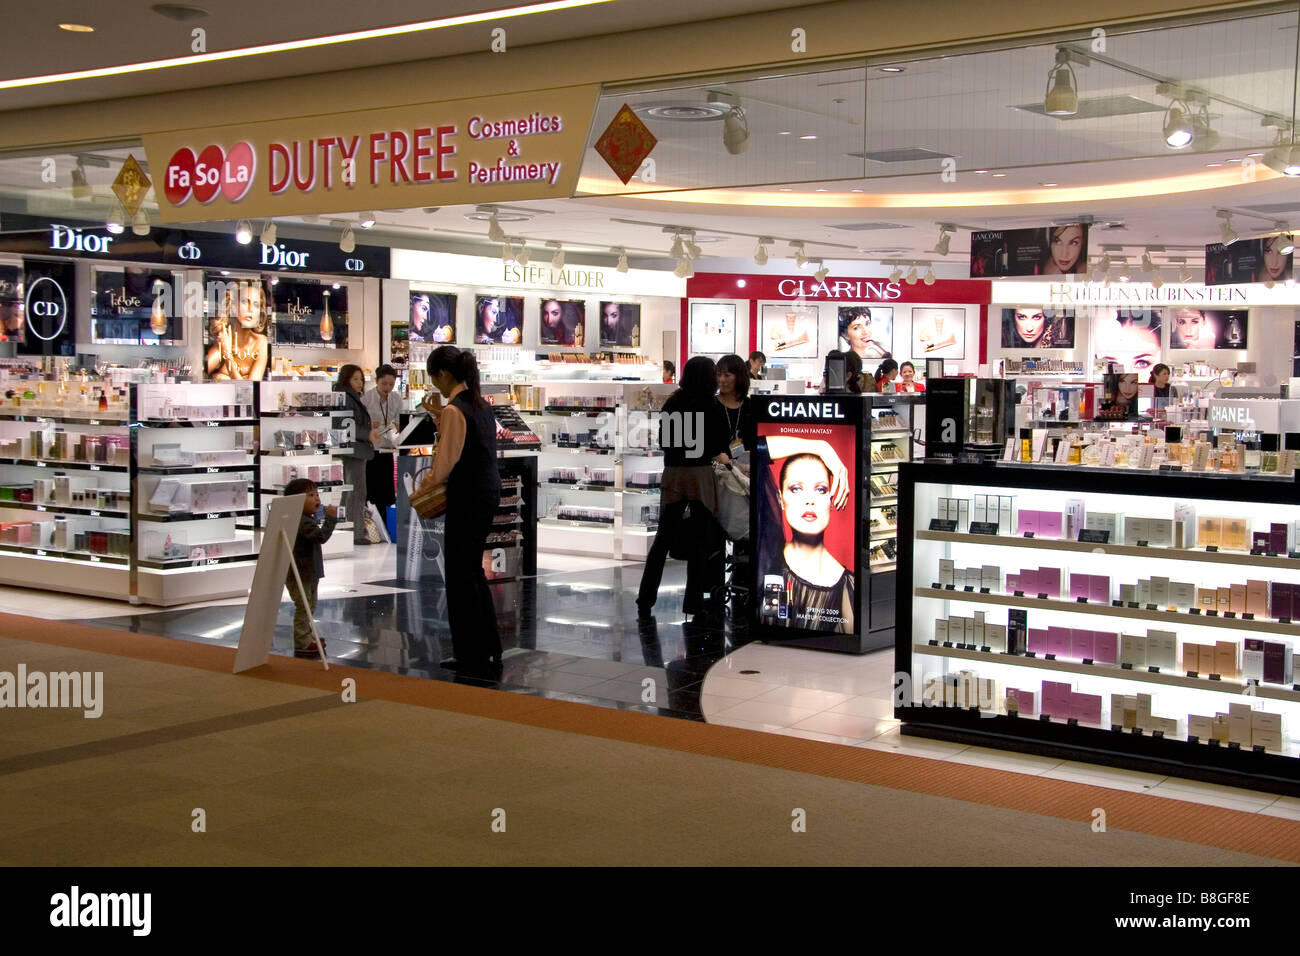 Travelers shop at a duty free store in the Narita International Airport Tokyo Japan - Stock Image